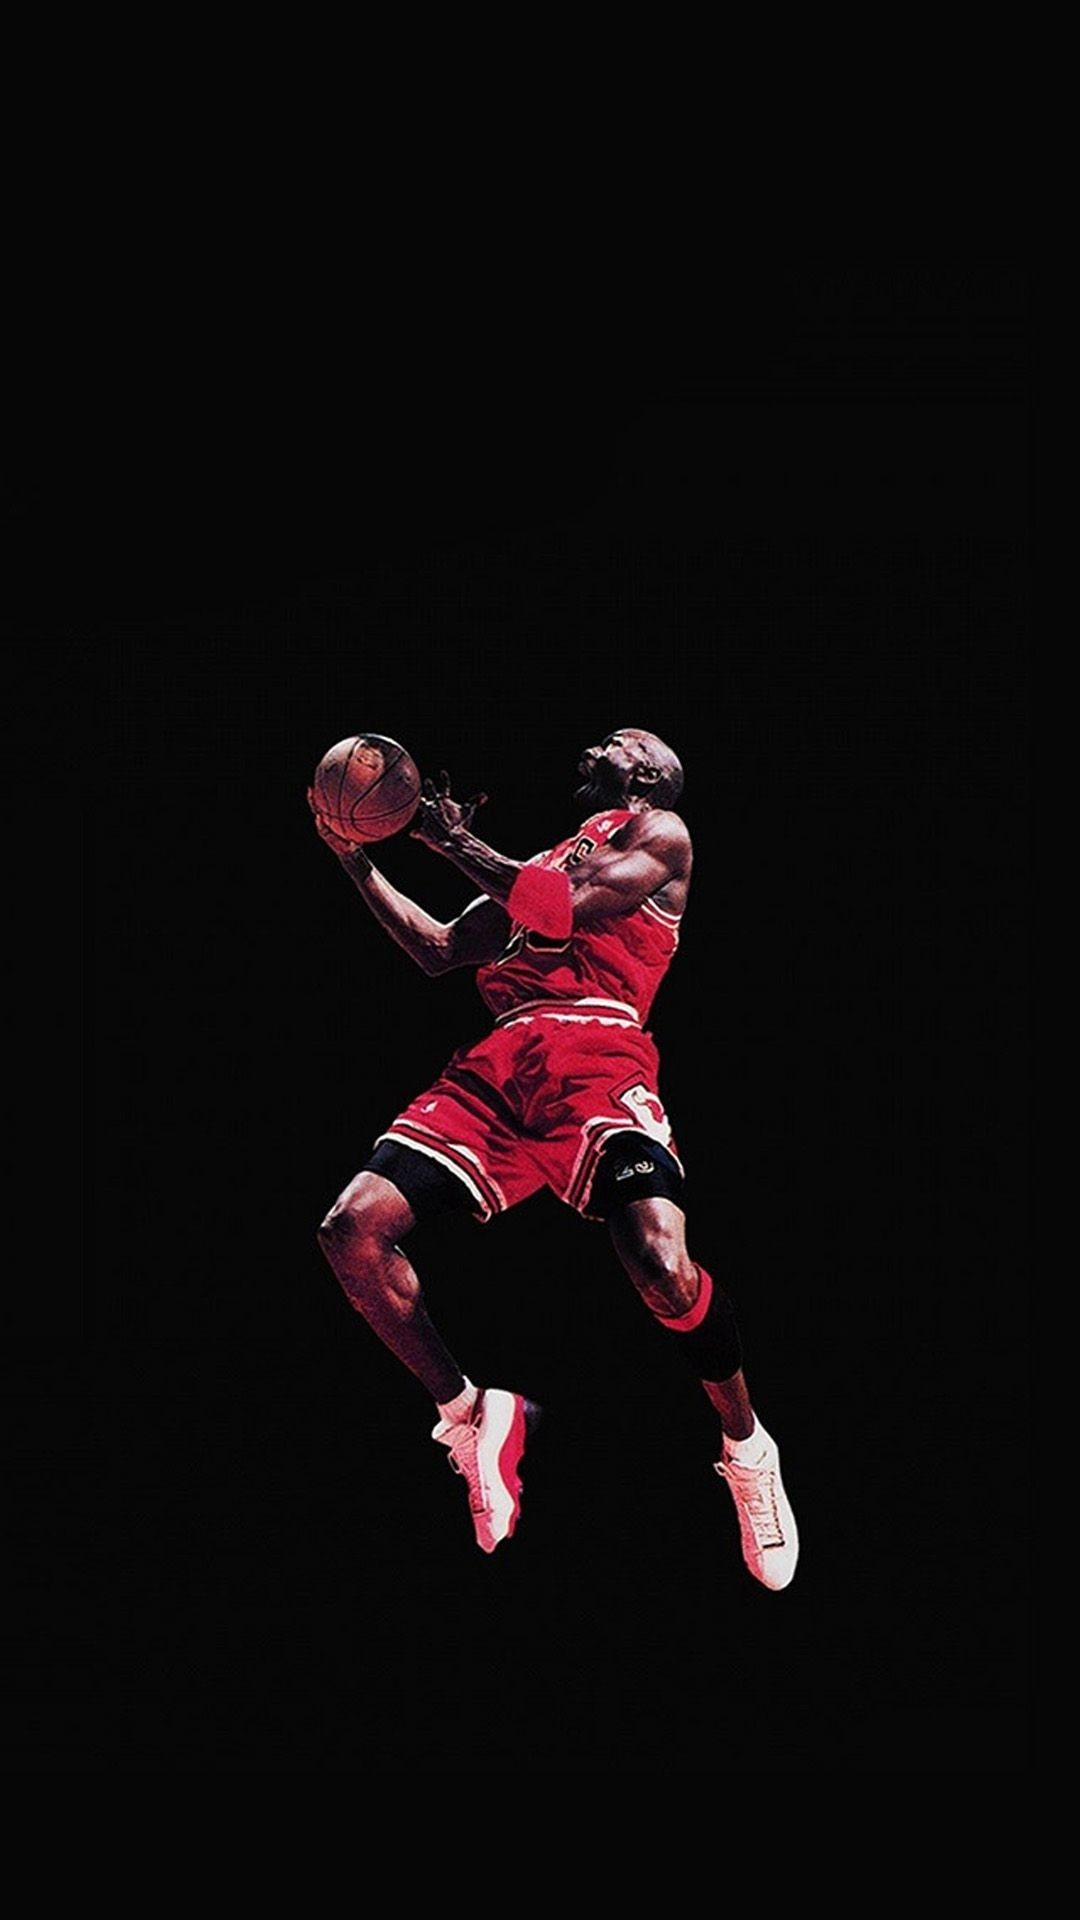 Air Jordan Wallpapers 77 Background Pictures